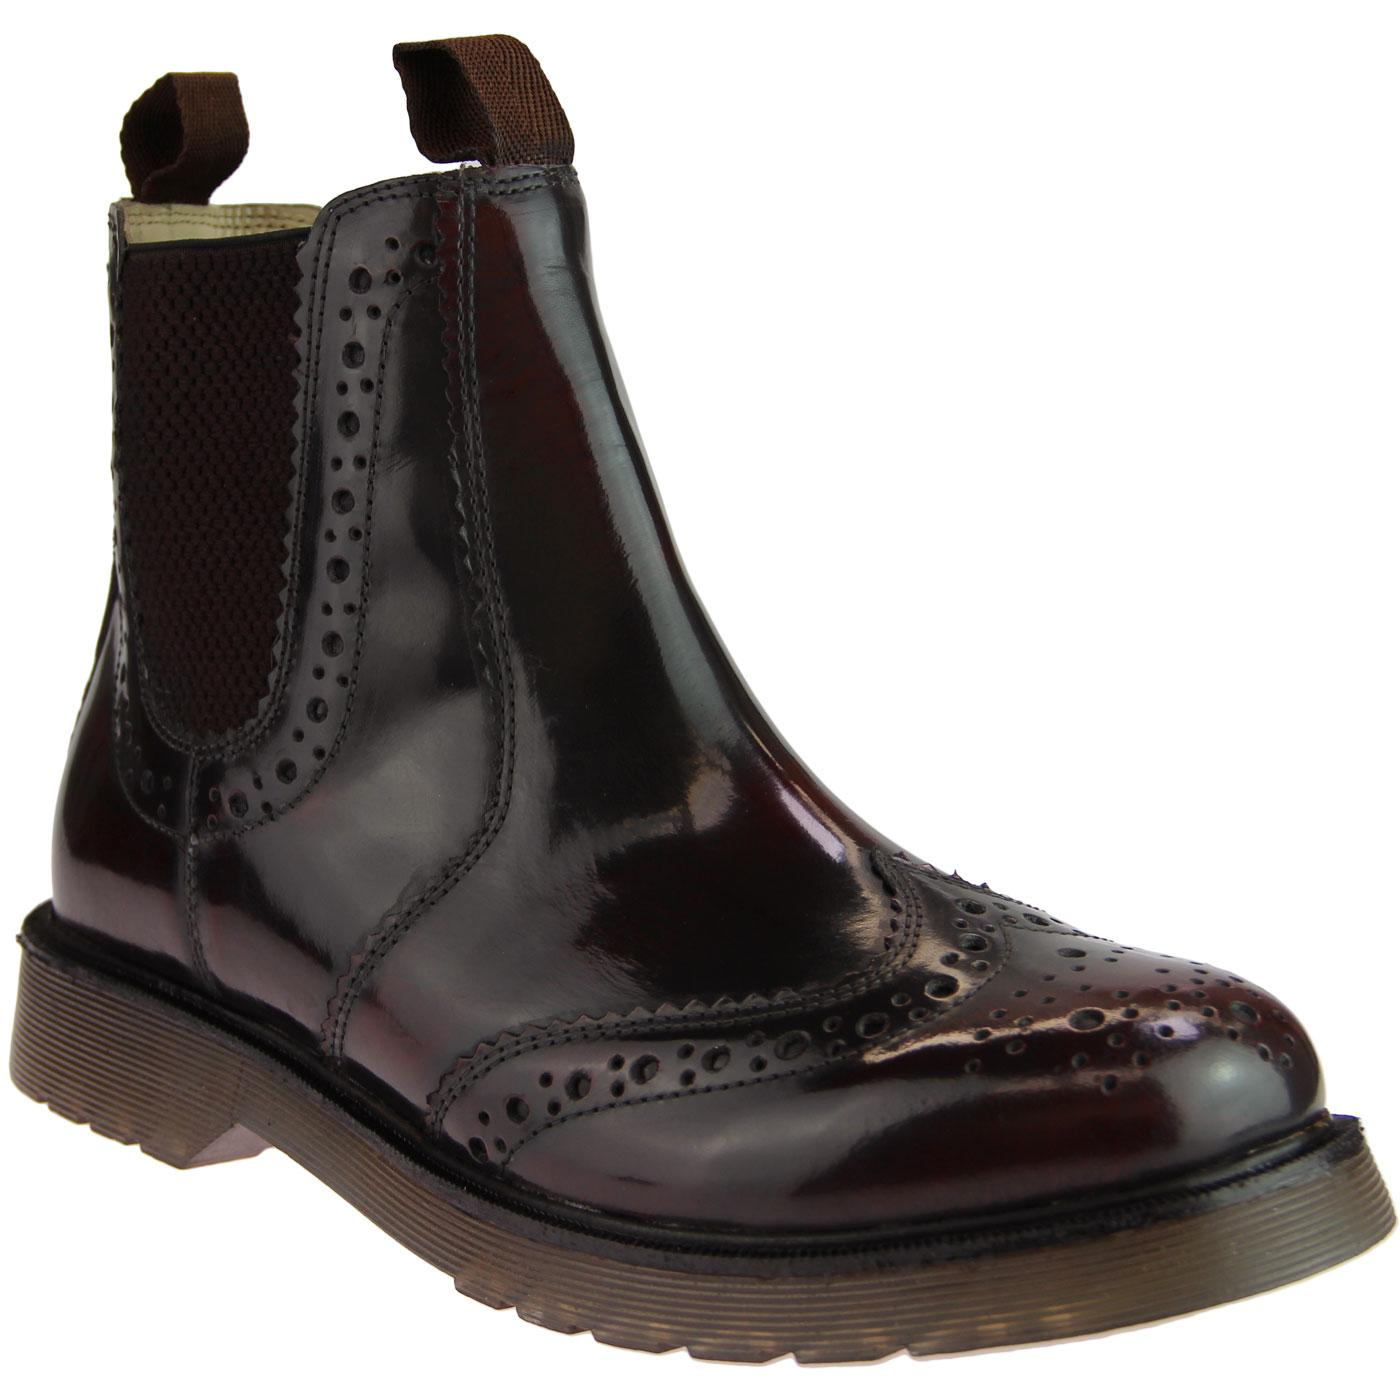 Retro Mod High Shine Brogue Chelsea Boots OXBLOOD